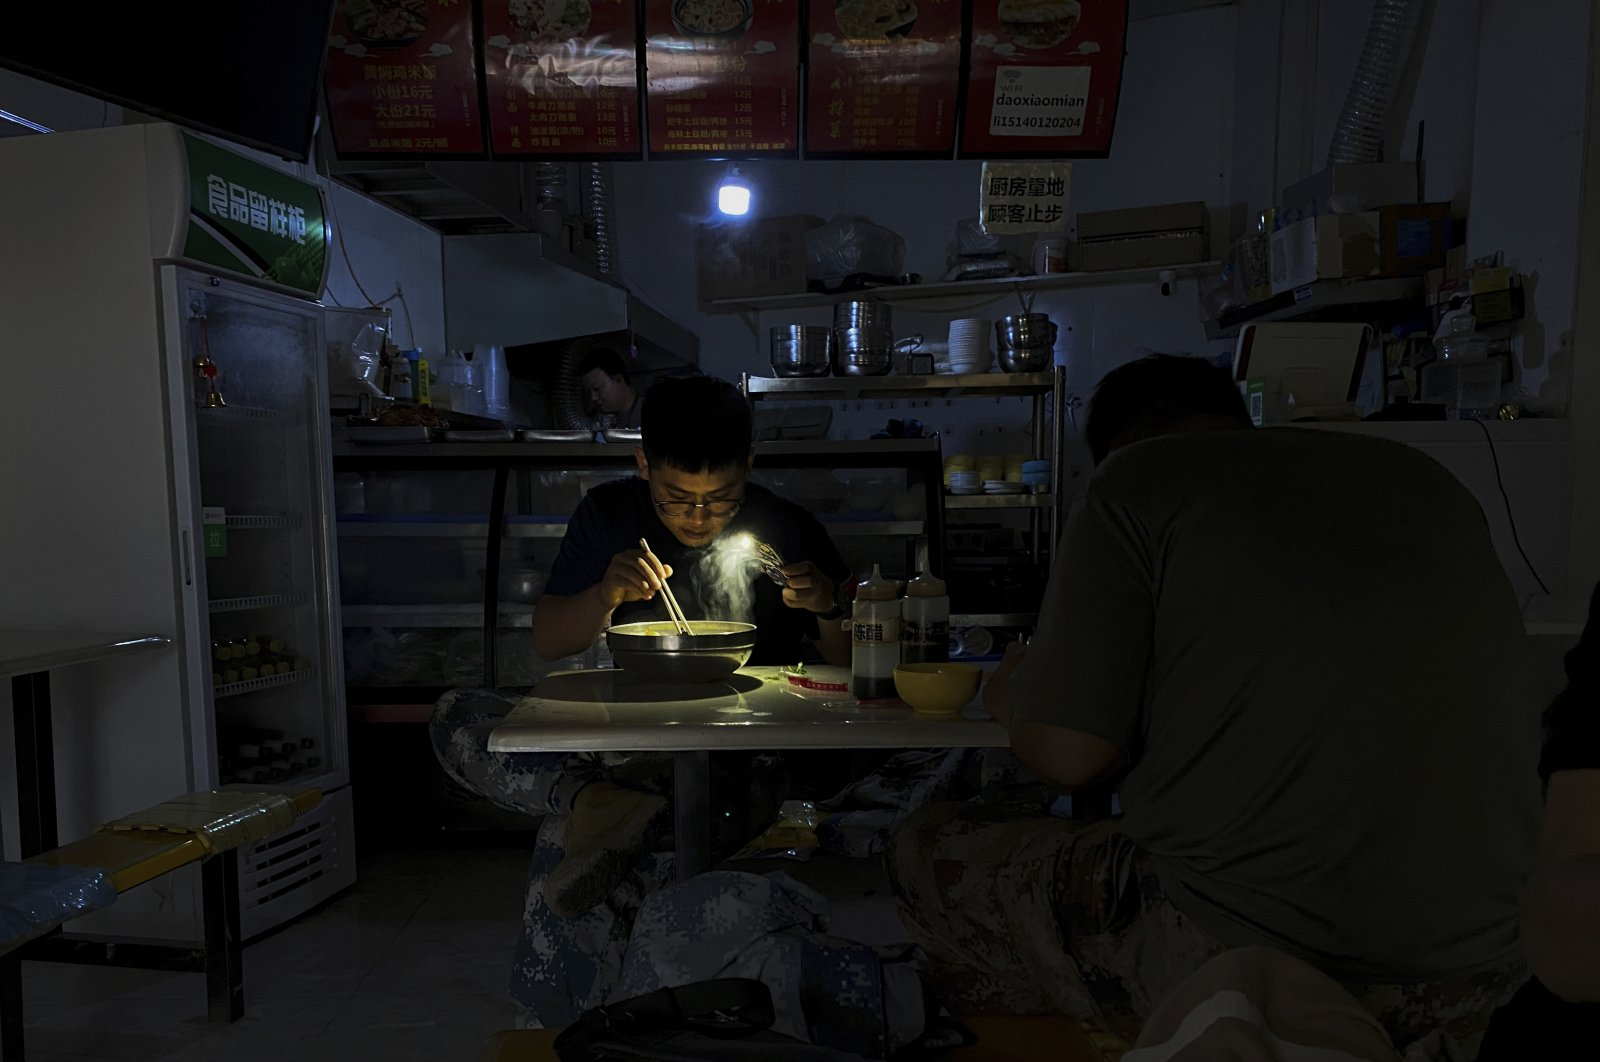 A man uses his smartphone flashlight to light up his bowl of noodles as he eats his breakfast at a restaurant during a blackout in Shenyang in the northeastern Liaoning Province, China, Sept. 29, 2021. (AP Photo)